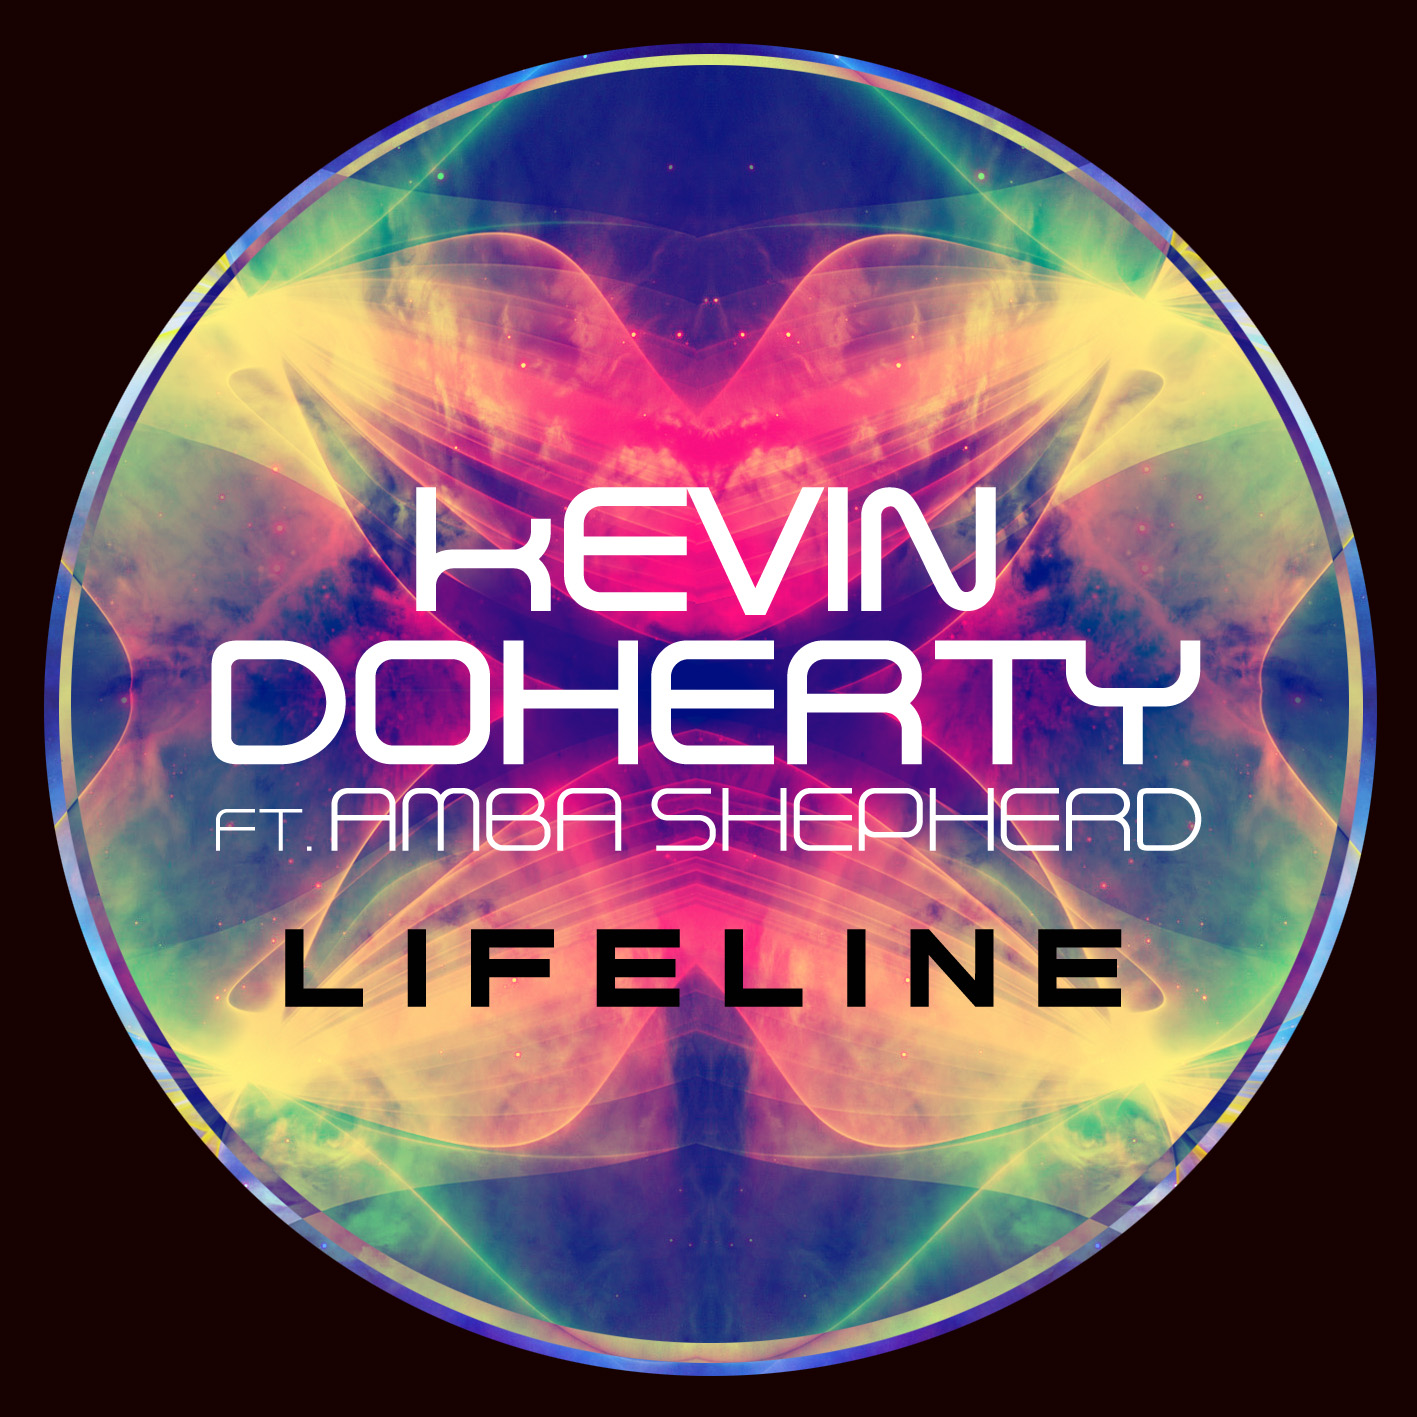 Kevin Doherty feat. Amba Shepherd – Lifeline (After Hours Dub)